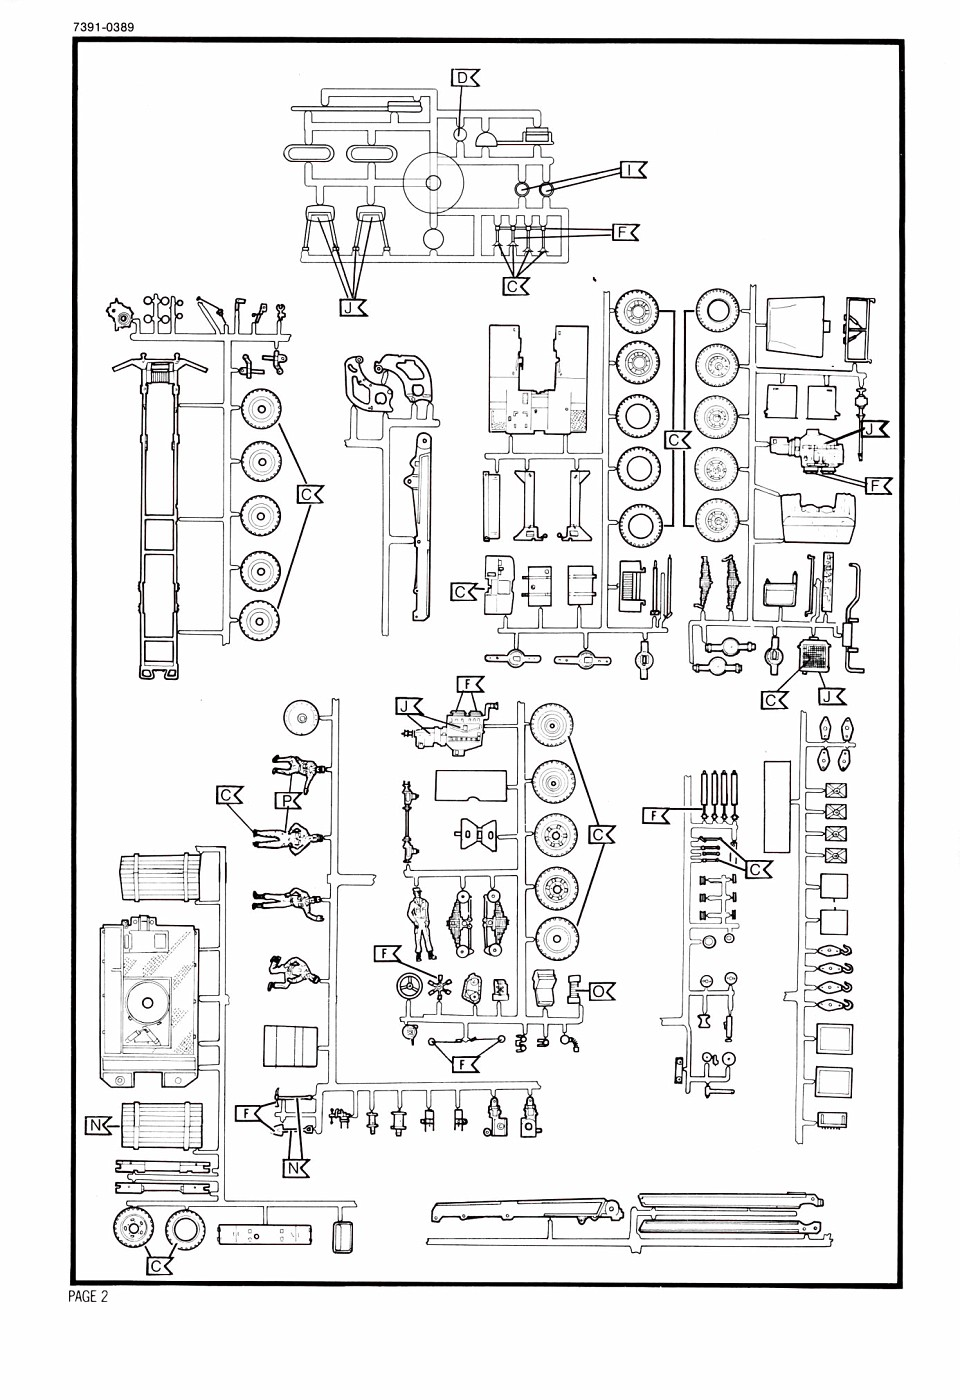 Semi Truck Kenworth W900 Wiring Diagram Diagrams Schematic 1982 Free Engine